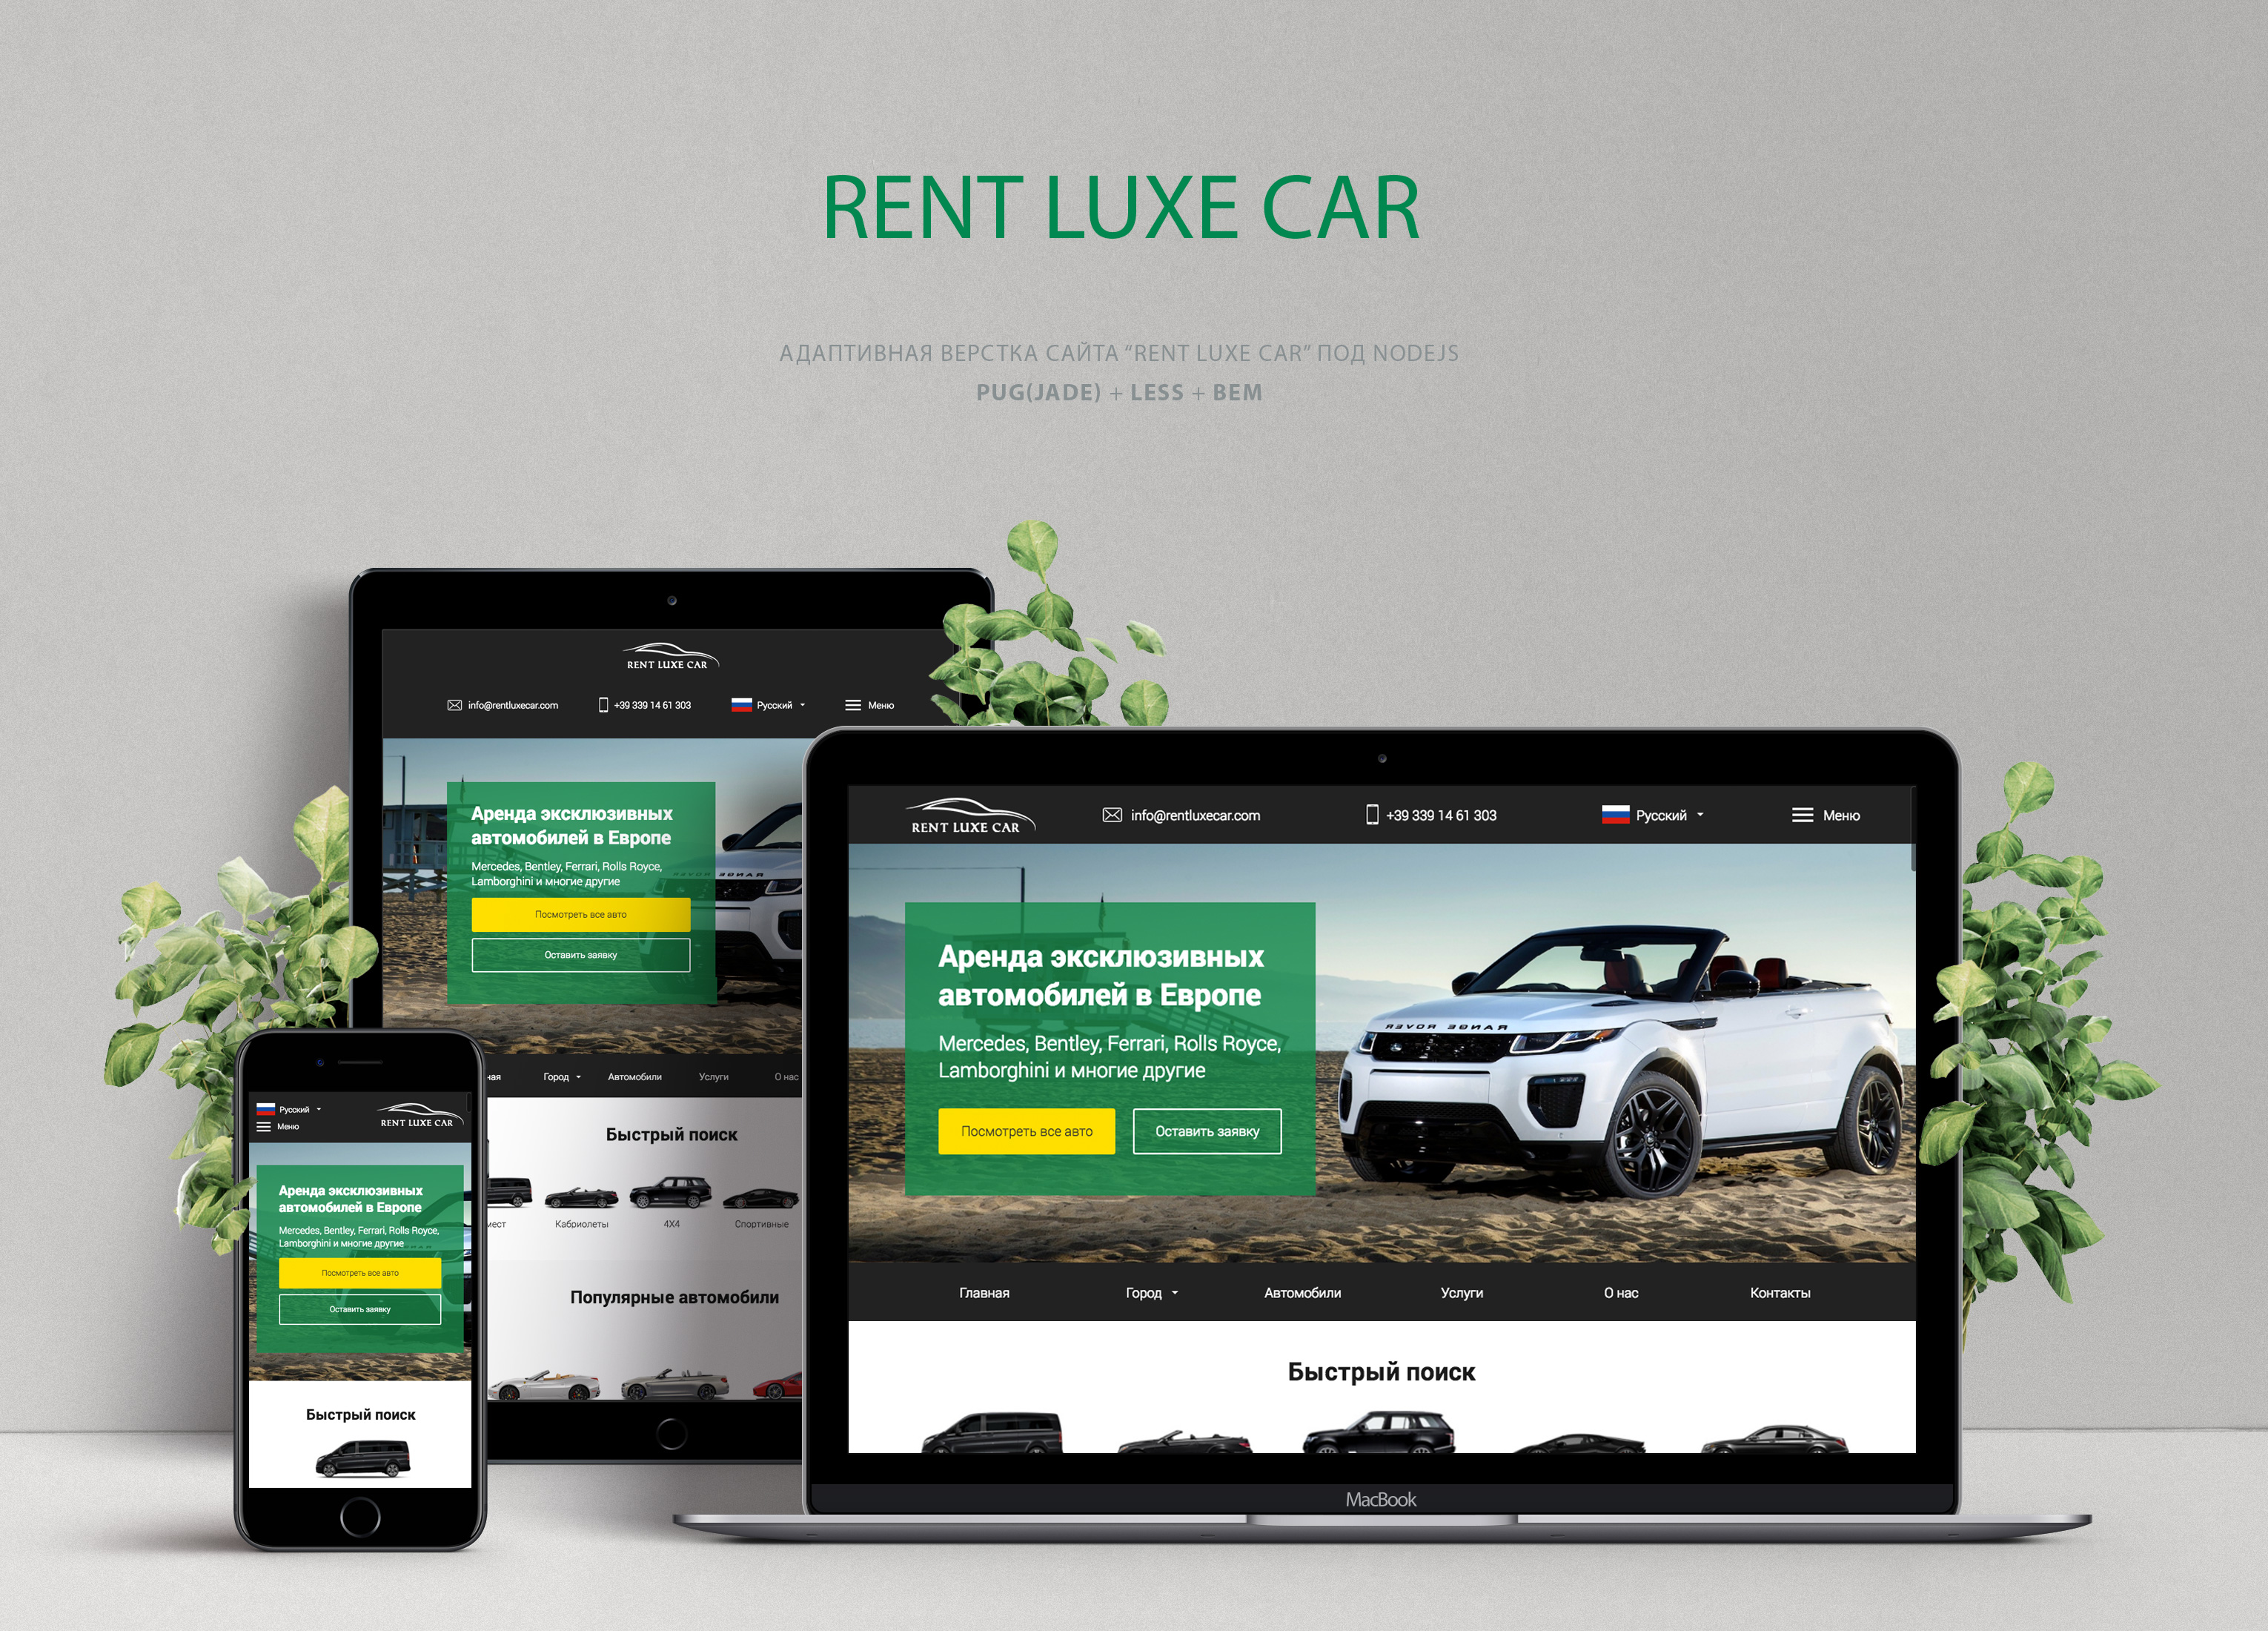 Rent Luxe Car